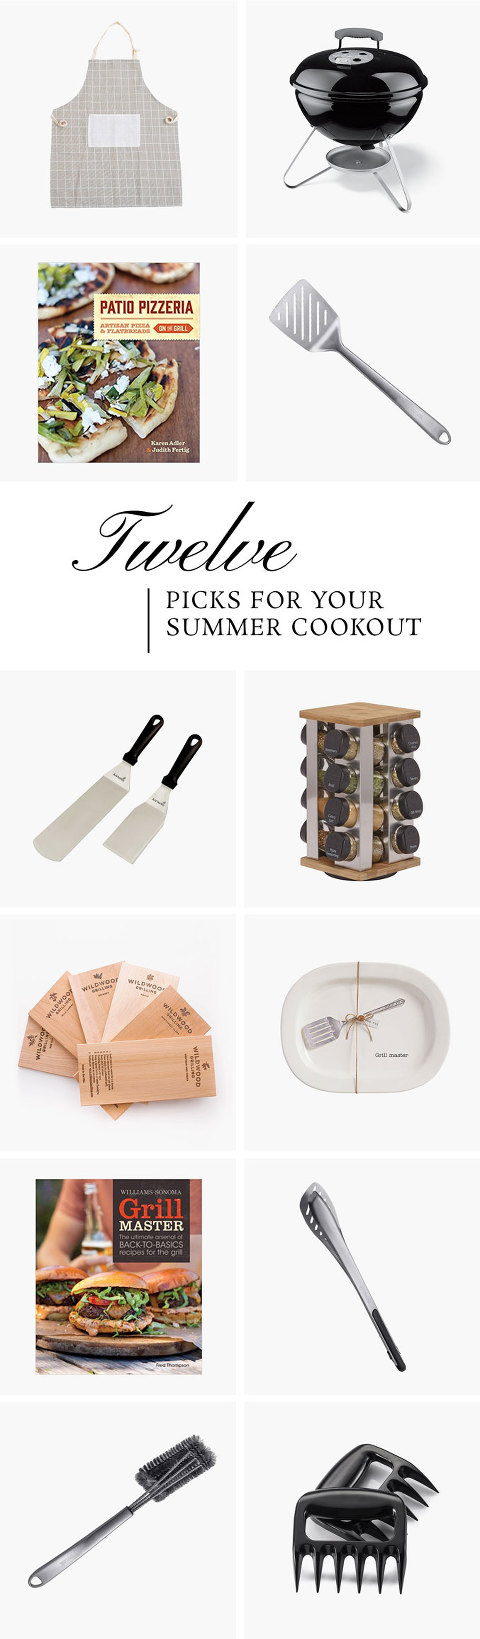 Everything You Need For Your Summer Cookout | dreamgreendiy.com